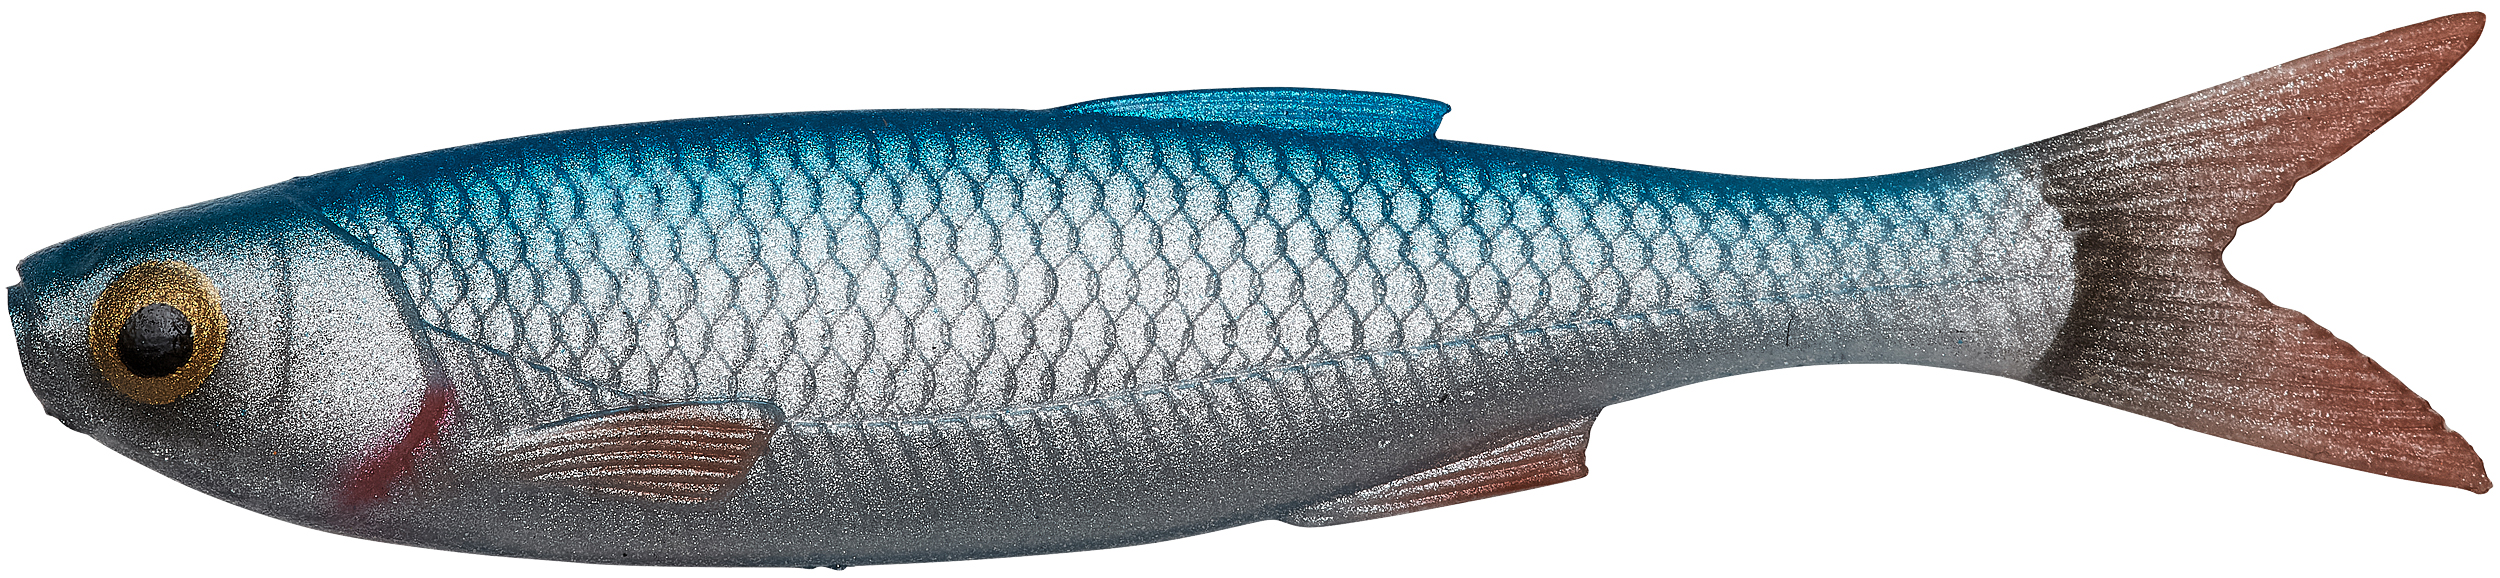 Savage Gear-Craft Dying Minnow 5,5cm Farbe Blue Pearl-1 - Gerlinger.de